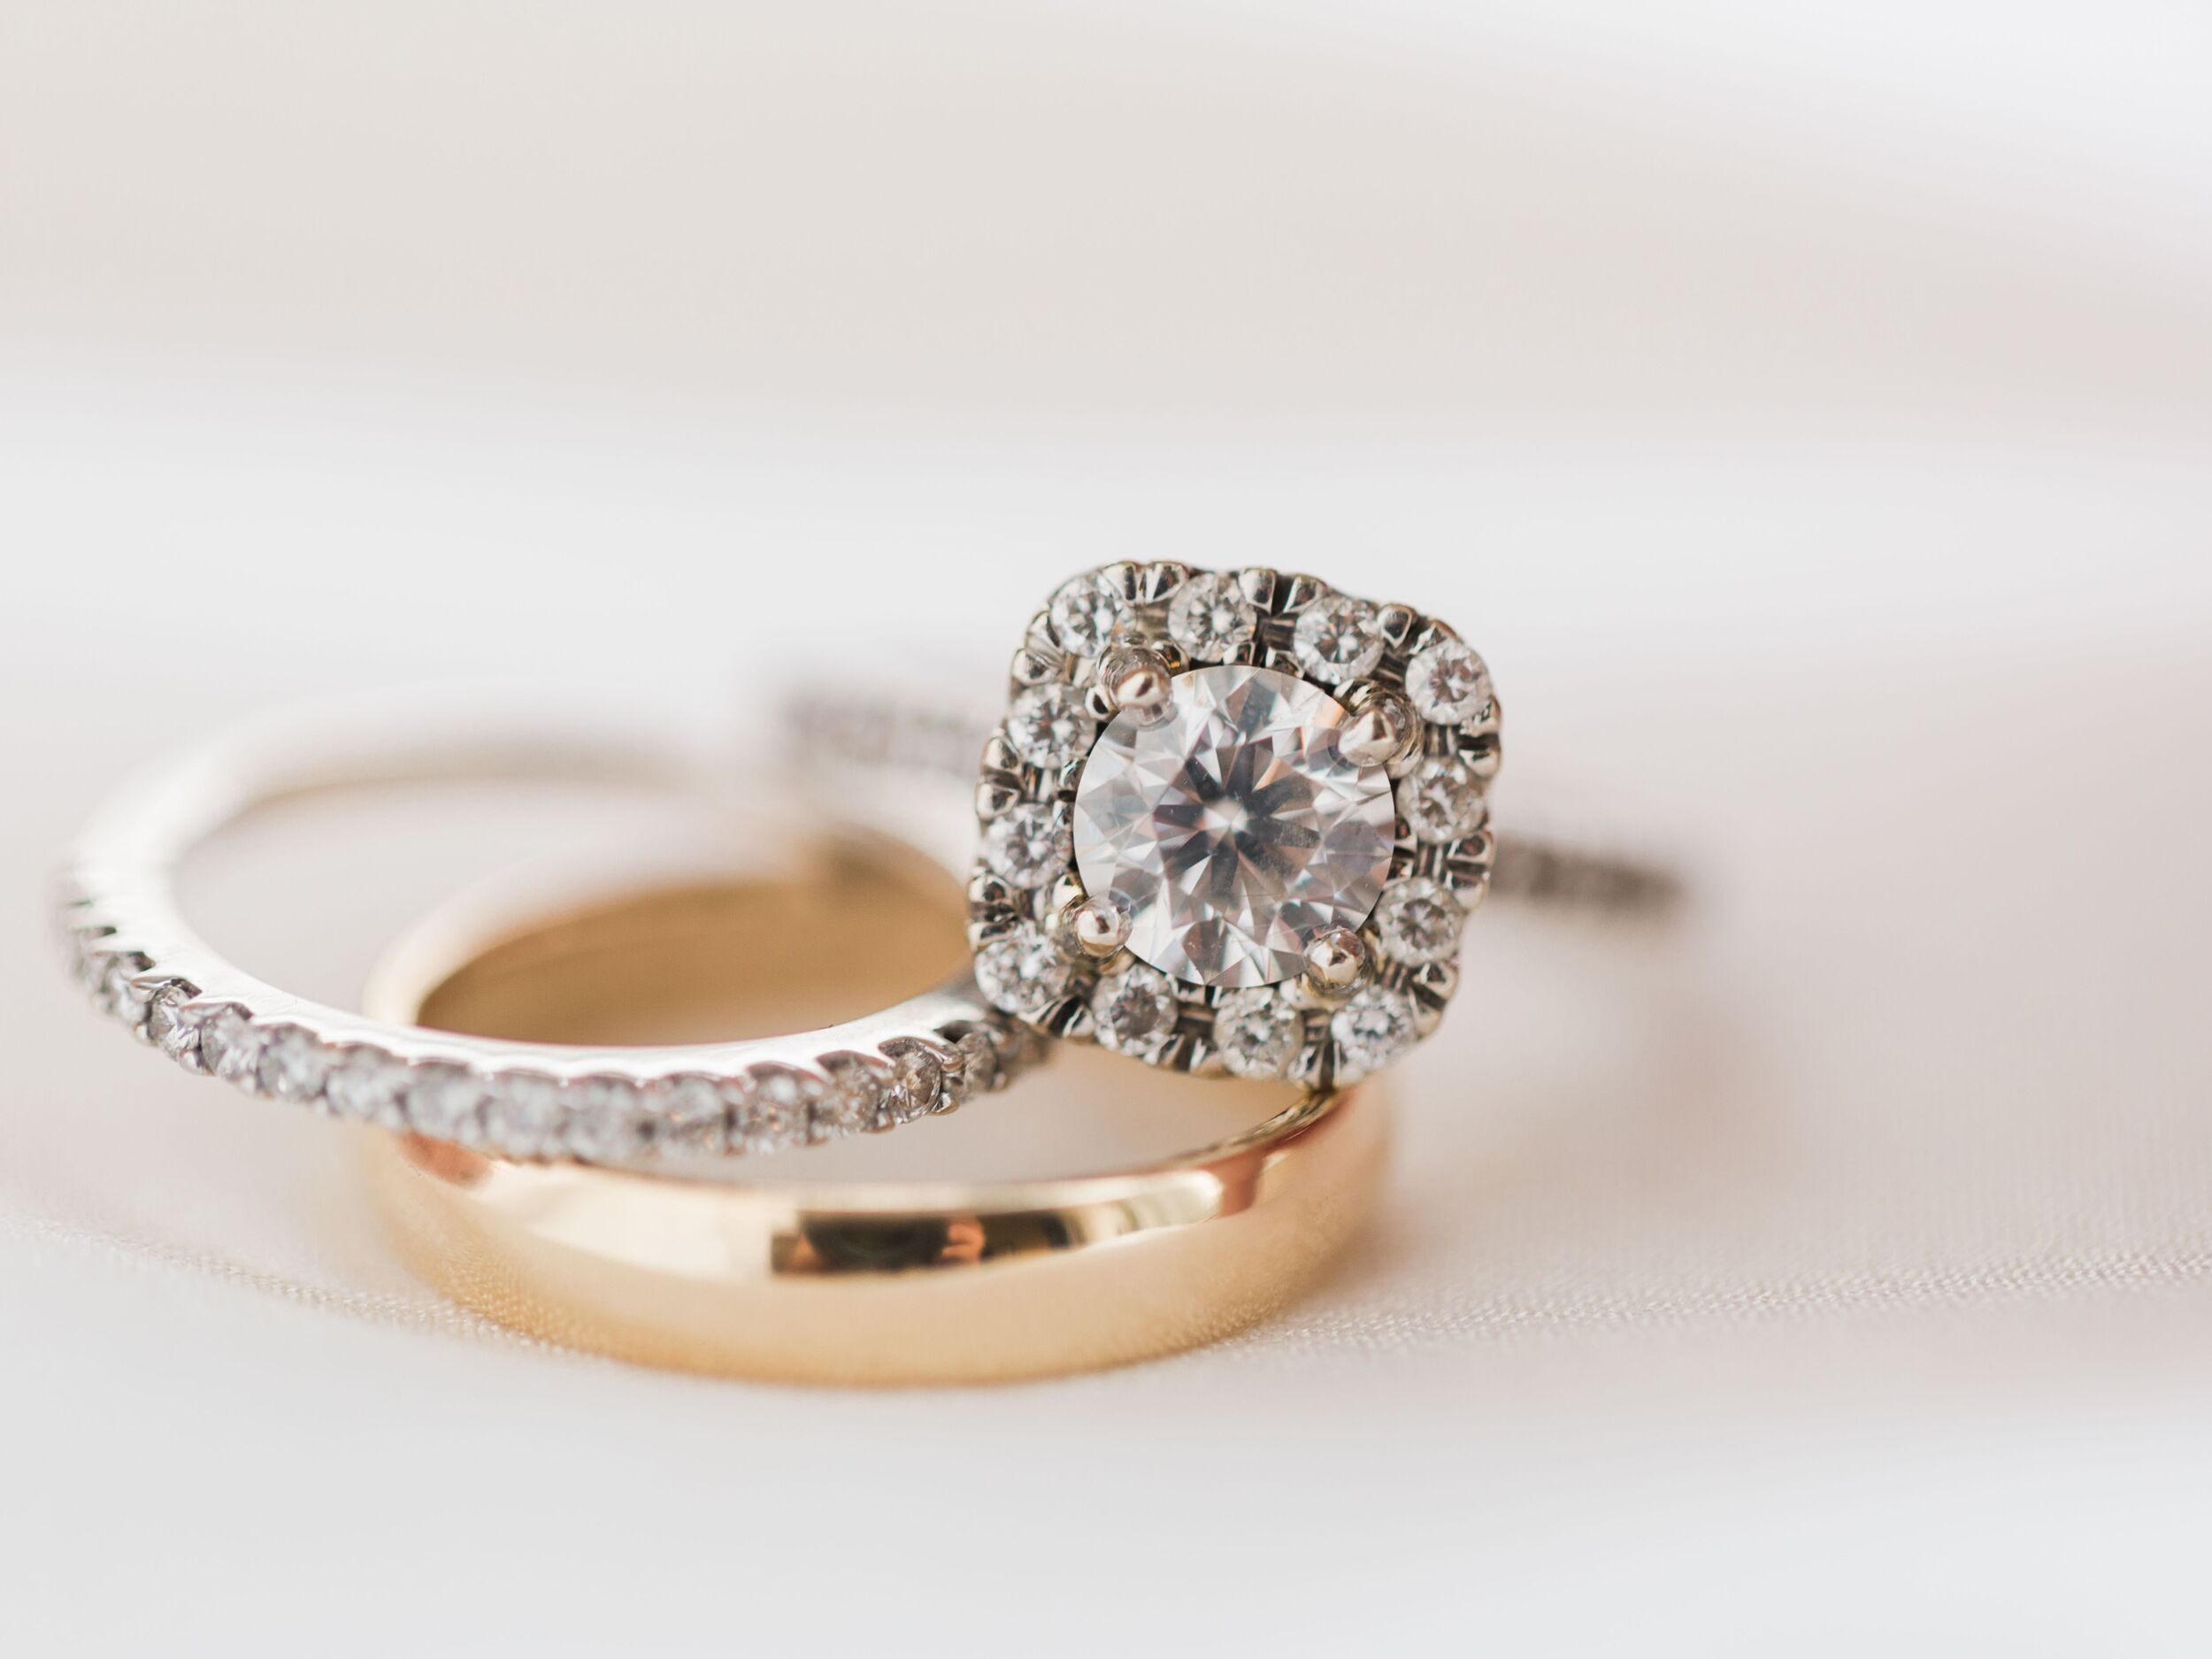 The Wedding Ring Etiquette Ceremony Guide Who Should Hold